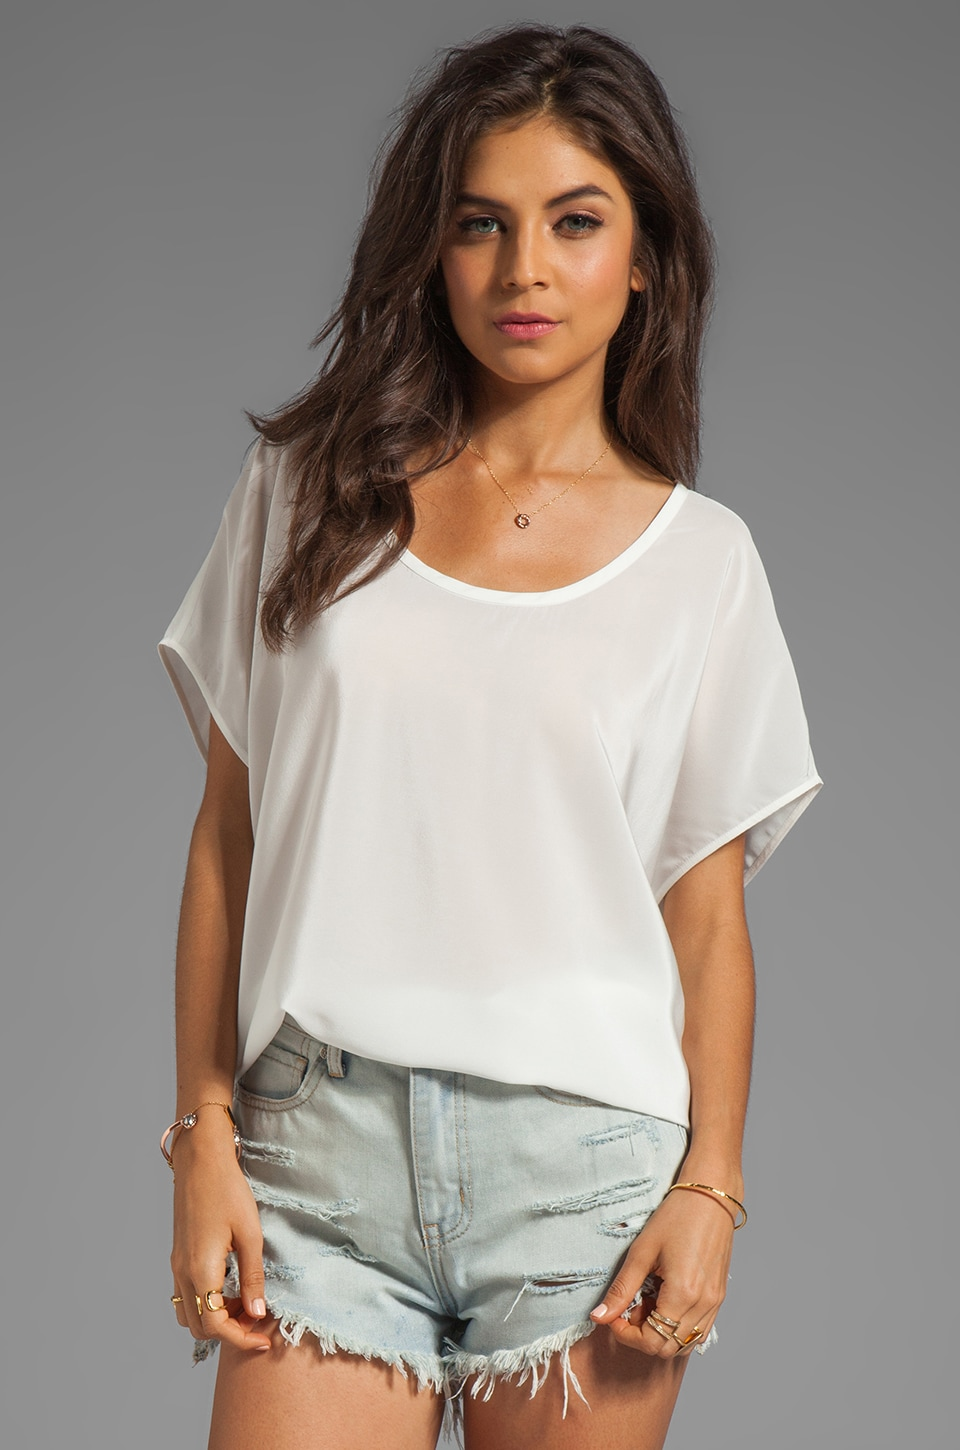 Joie Joann F Silk Top in Porcelain